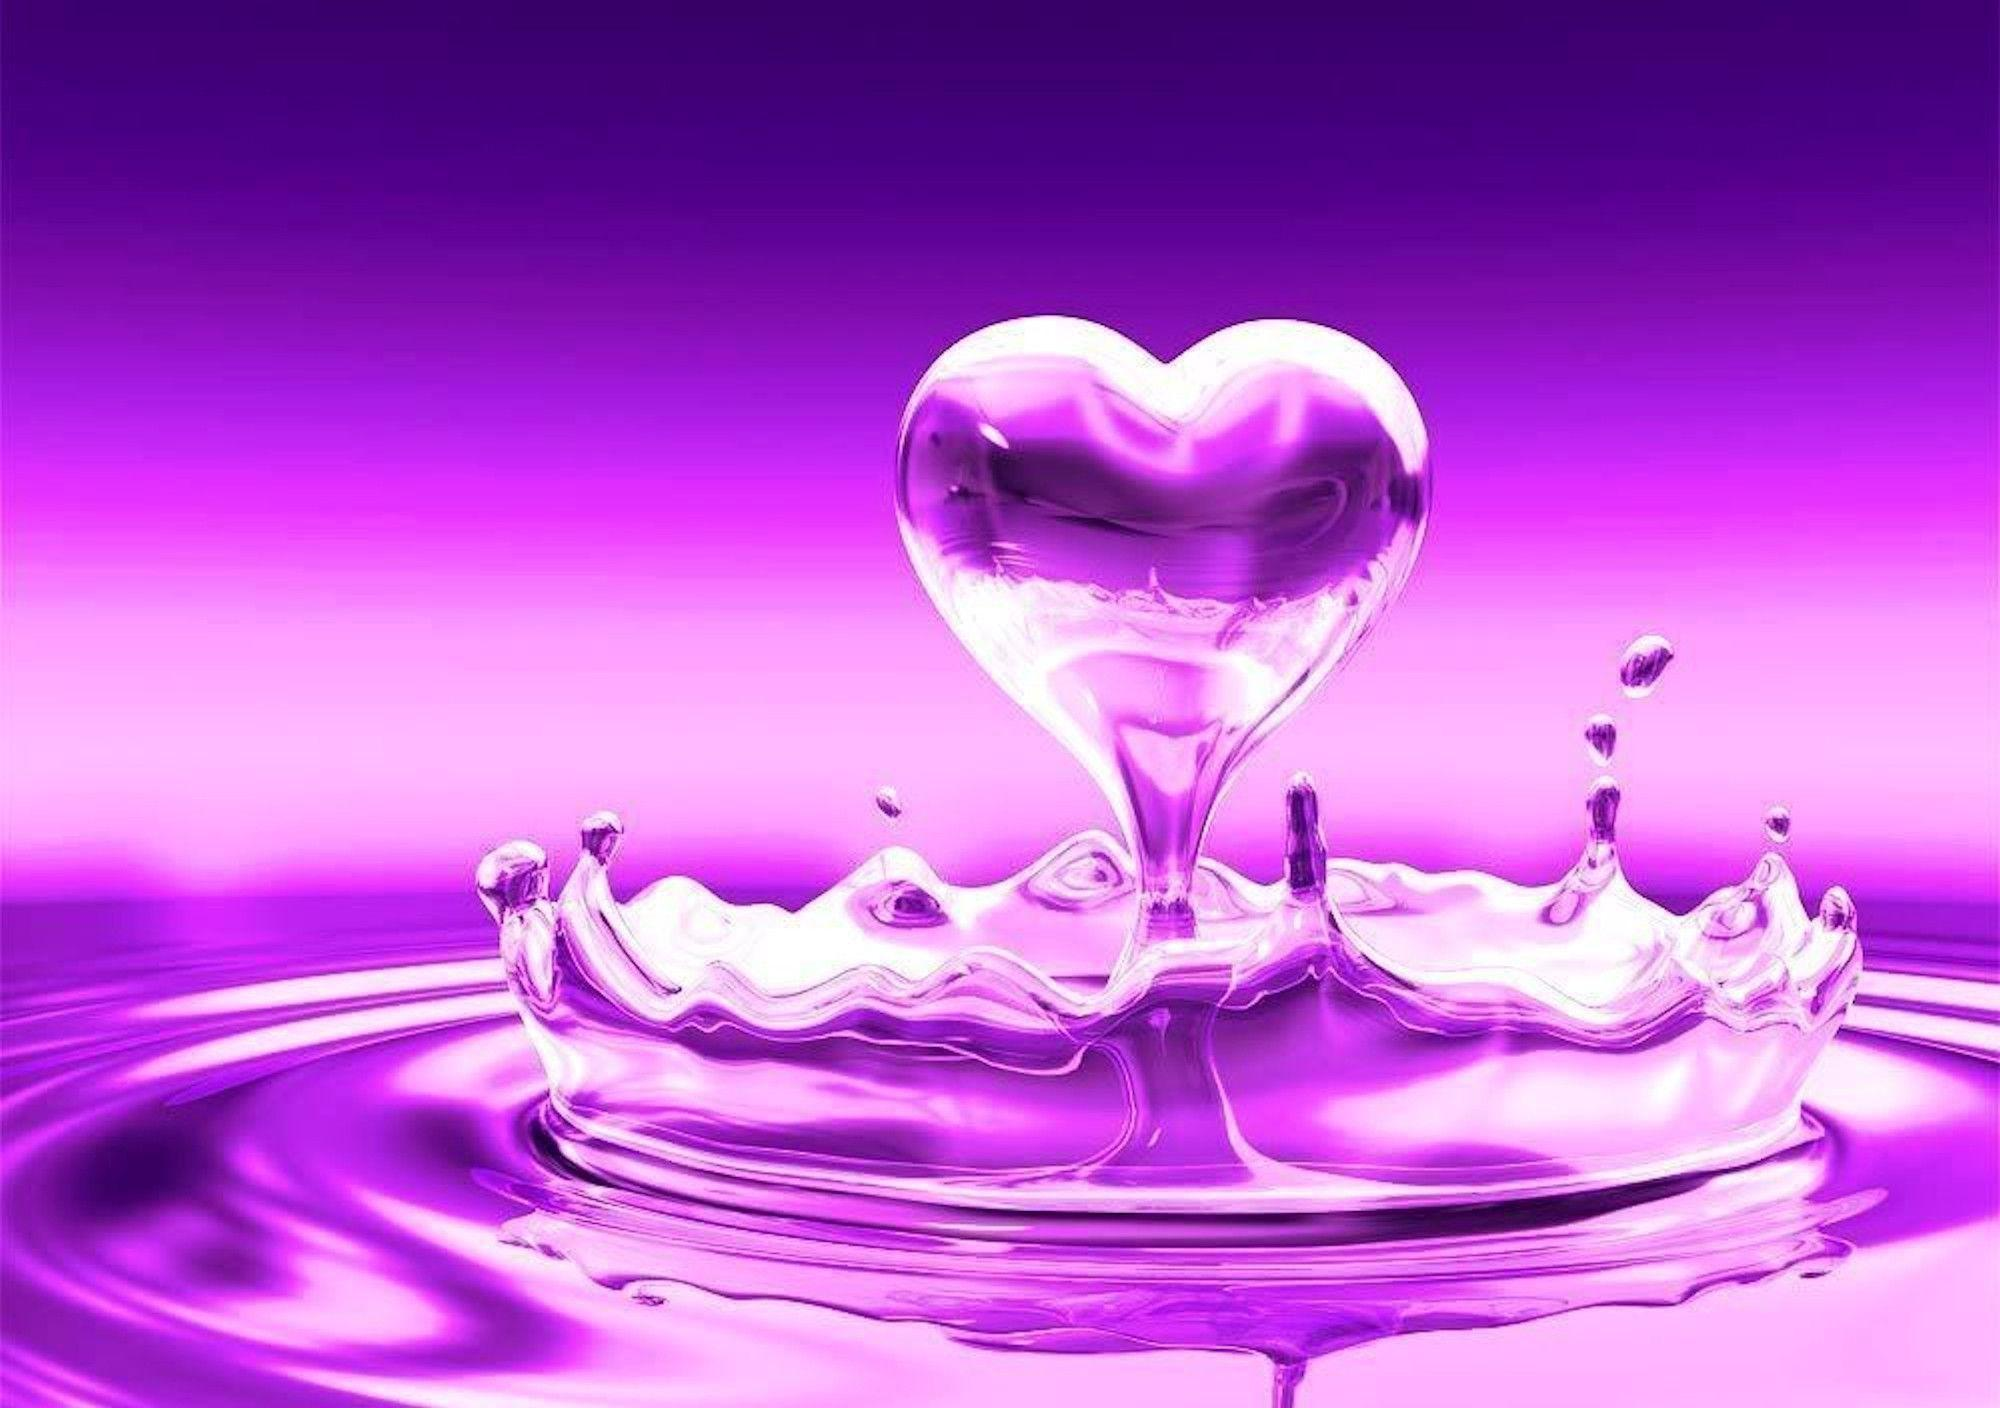 Wallpaper Love Violet : Purple Heart Wallpapers - Wallpaper cave